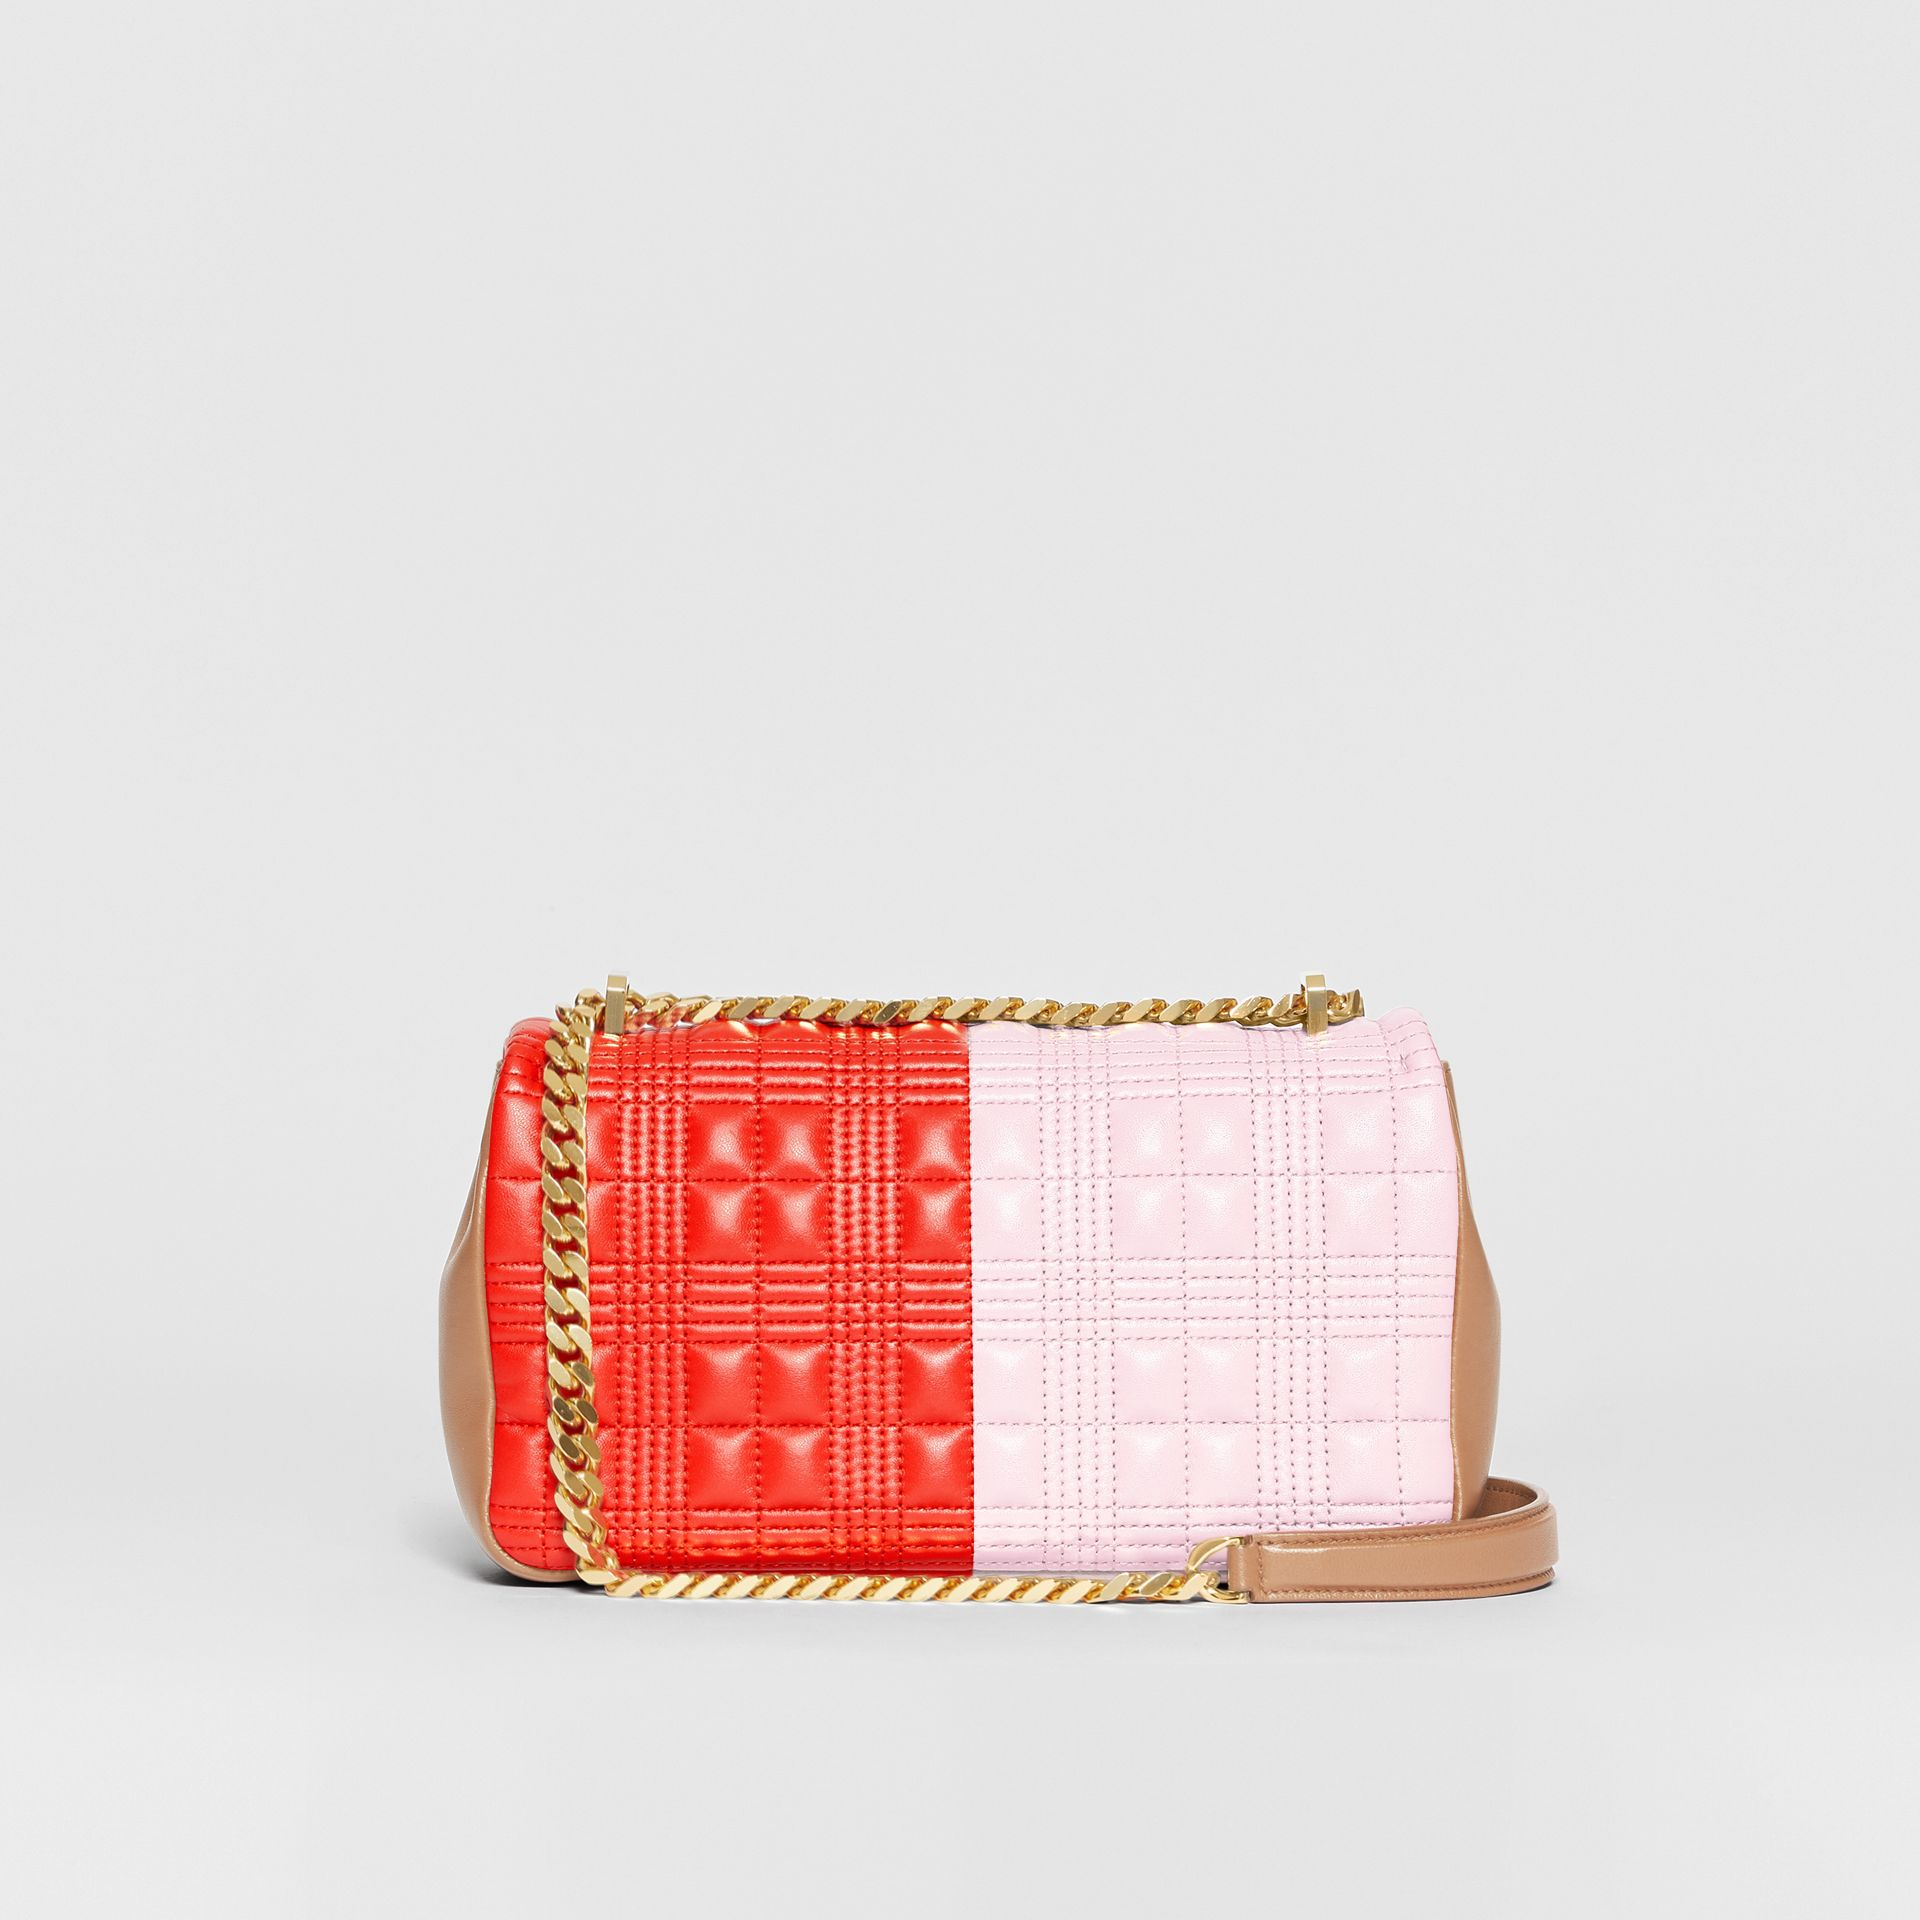 Small Quilted Tri-tone Lambskin Lola Bag in Red/pink/camel - Women | Burberry - gallery image 7